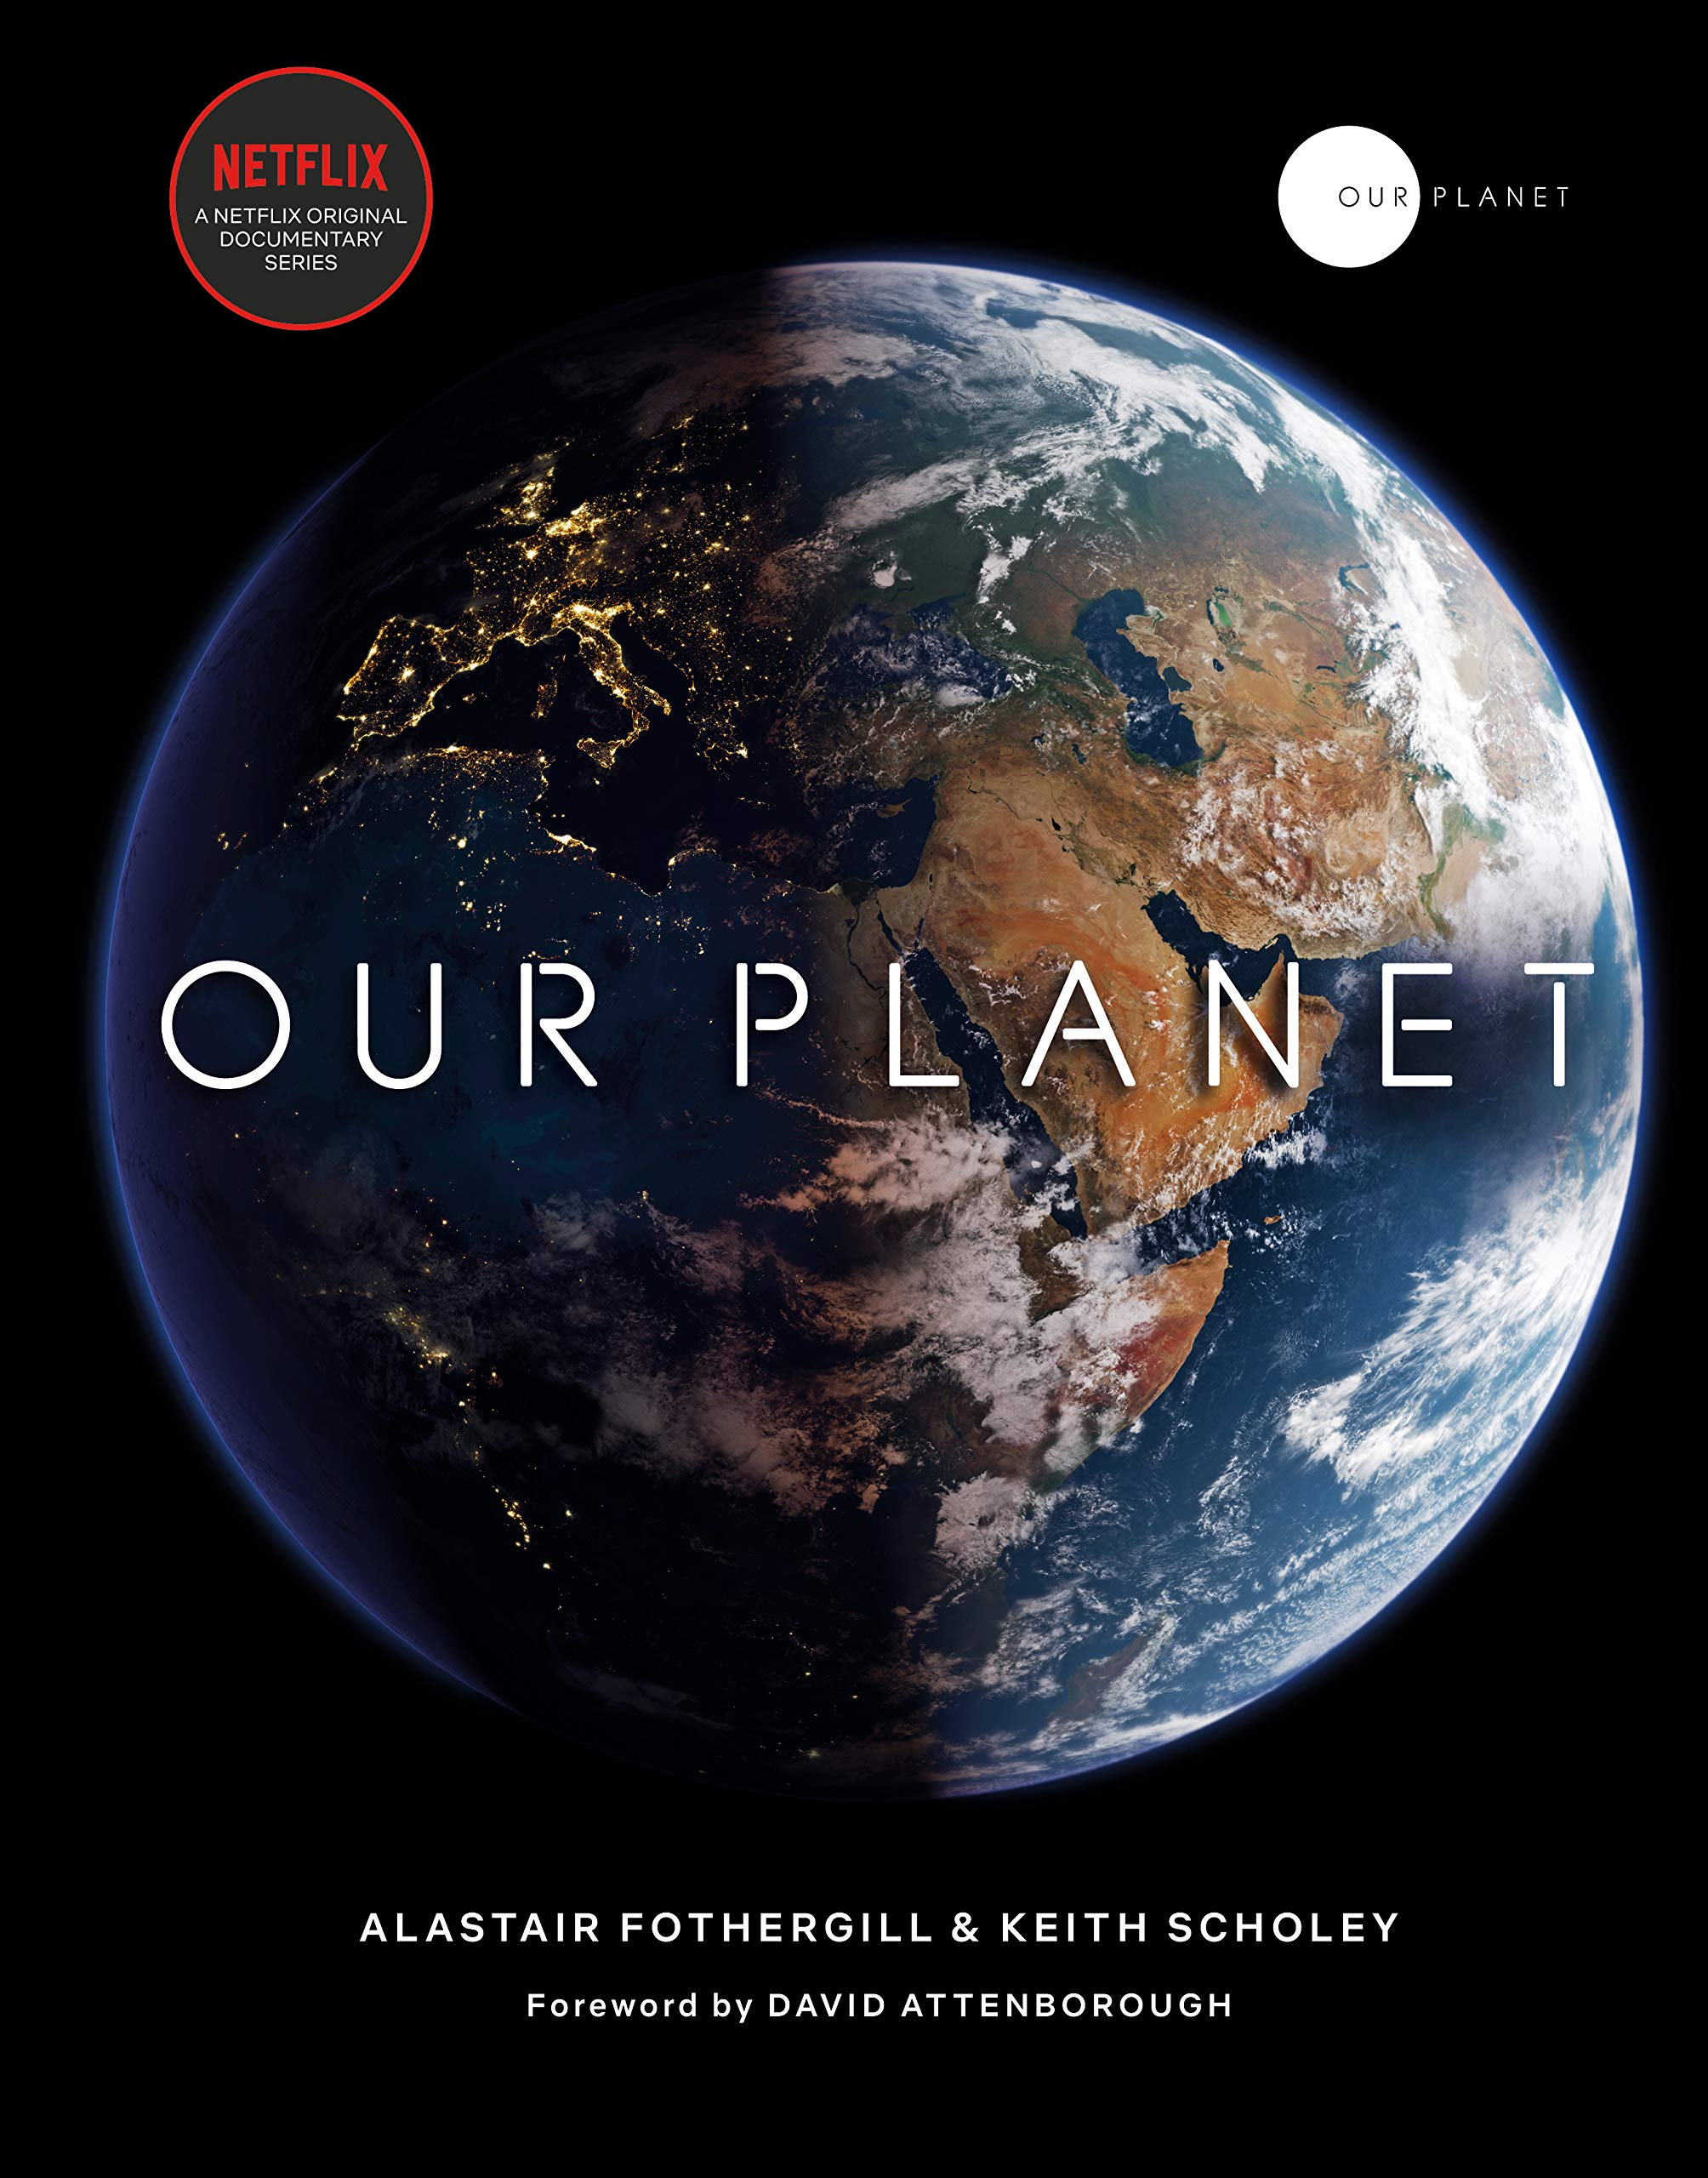 Our Planet: The official companion to the ground-breaking Netflix original  Attenborough series with a special foreword by David Attenborough:  Amazon.co.uk: Fothergill, Alastair, Scholey, Keith, Pearce, Fred,  Attenborough, David: 9780593079768: Books